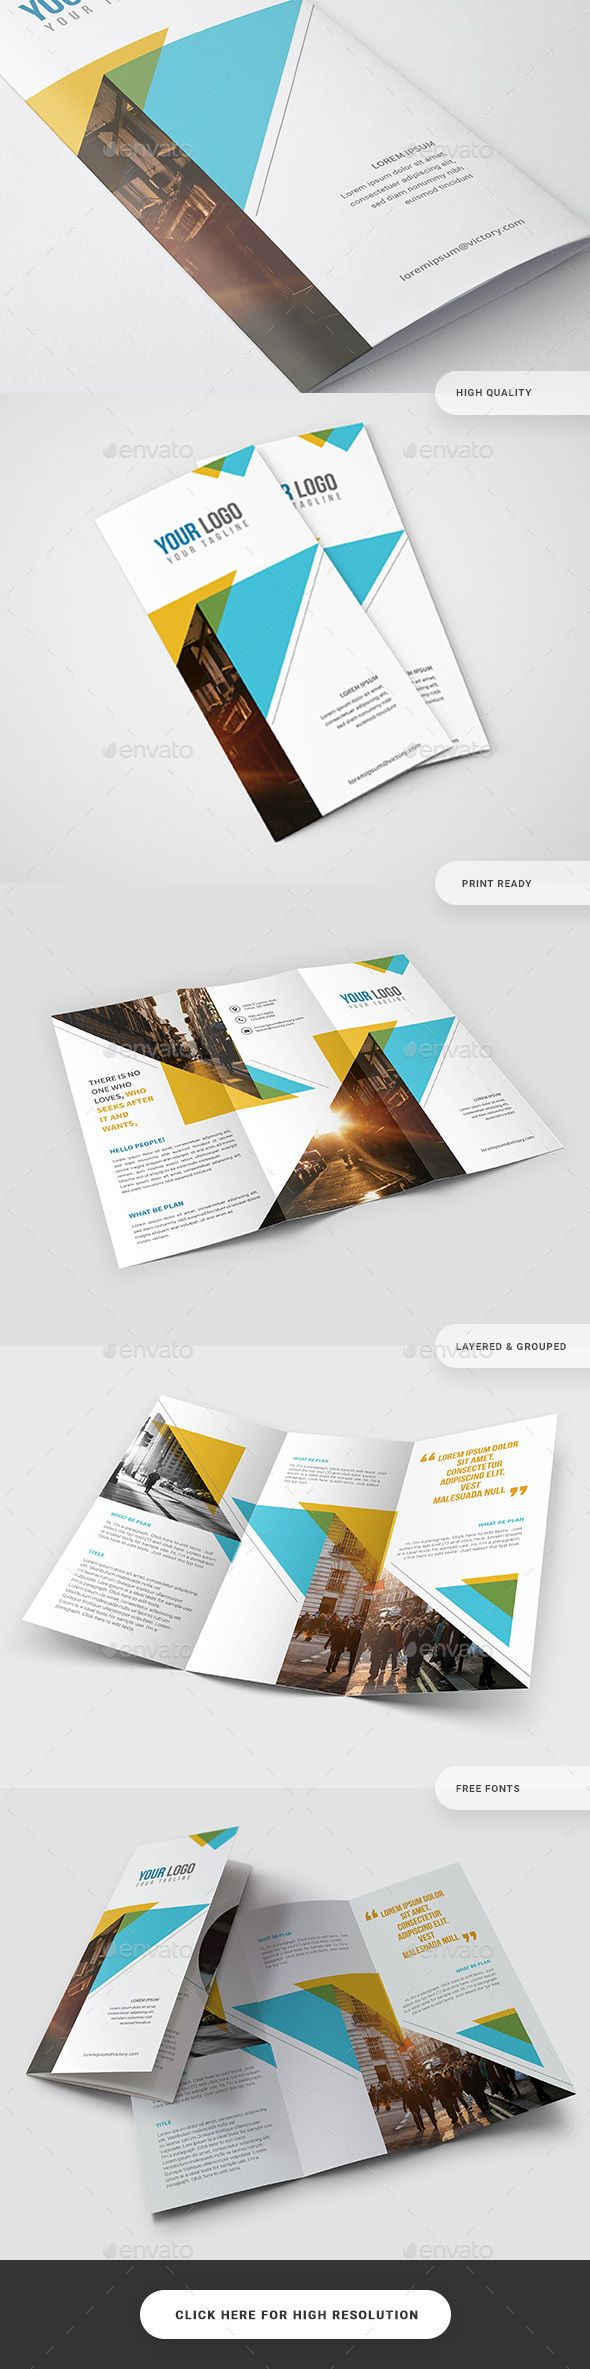 Colorful Triangle Trifold Design Template - Catalogs Brochures Design Template PSD. Download here: https://graphicriver.net/item/colorful-triangle-trifold/19400424?ref=yinkira